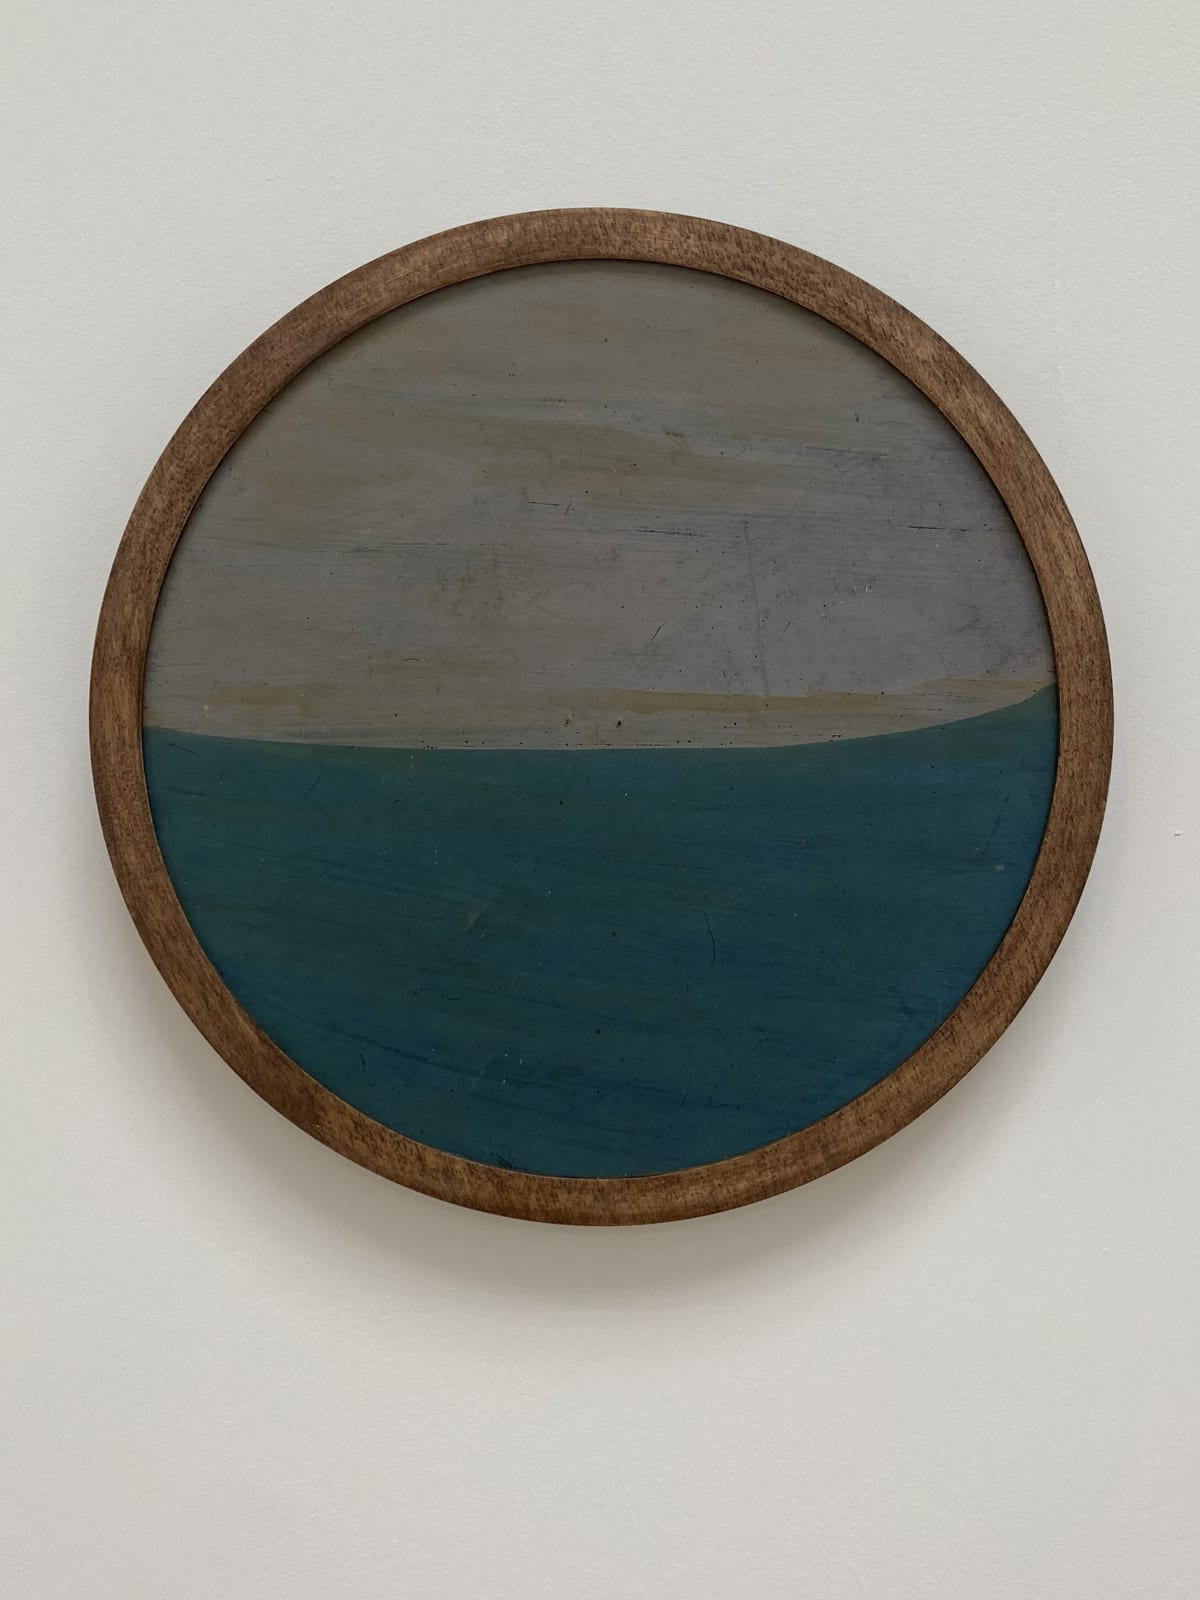 Frank Walter Untitled (Lilac sky, blue green sea) oil on biocomposite material, backed with Masonite 21.8 cm diameter